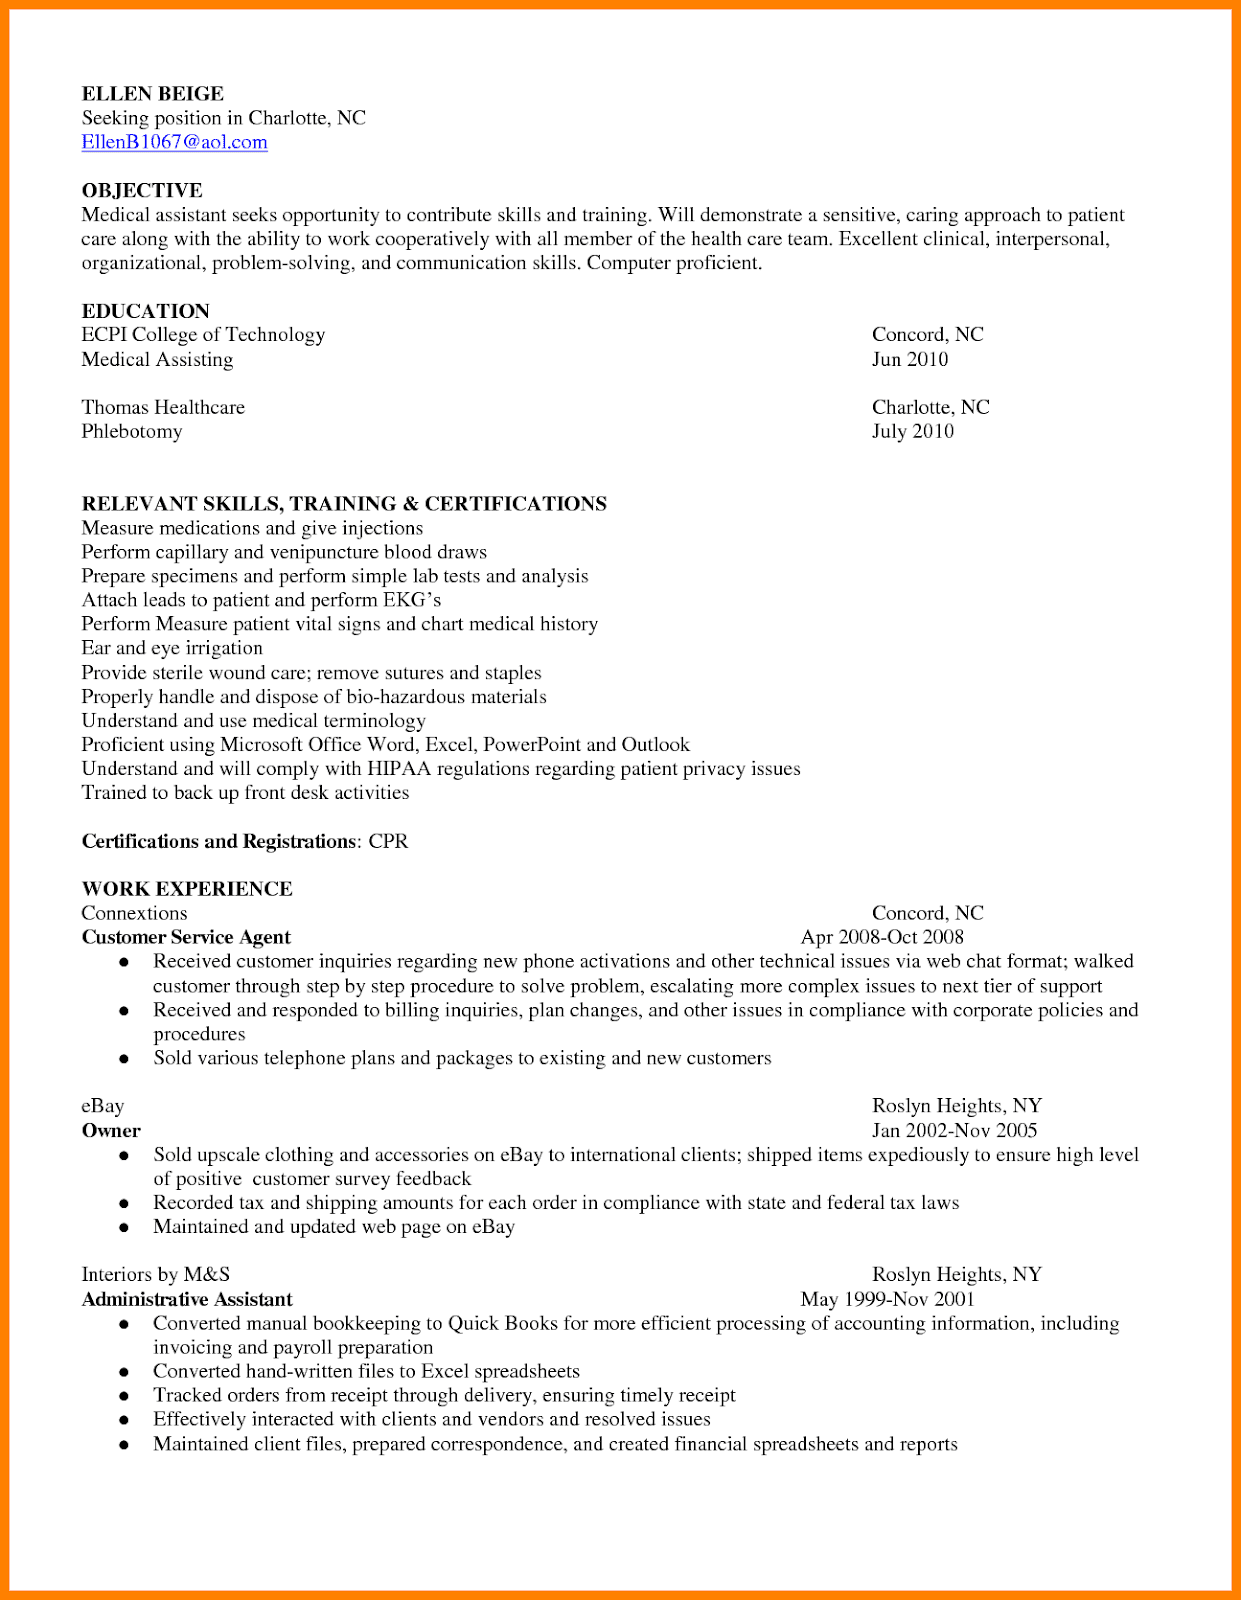 Medical Assistant Resume Examples 2019, medical assistant resume examples, medical assistant resume examples 2018, medical assistant resume examples entry level, medical assistant resume examples no experience, medical assistant resume examples 2019, medical assistant resume examples with experience, medical assistant resume examples skills,